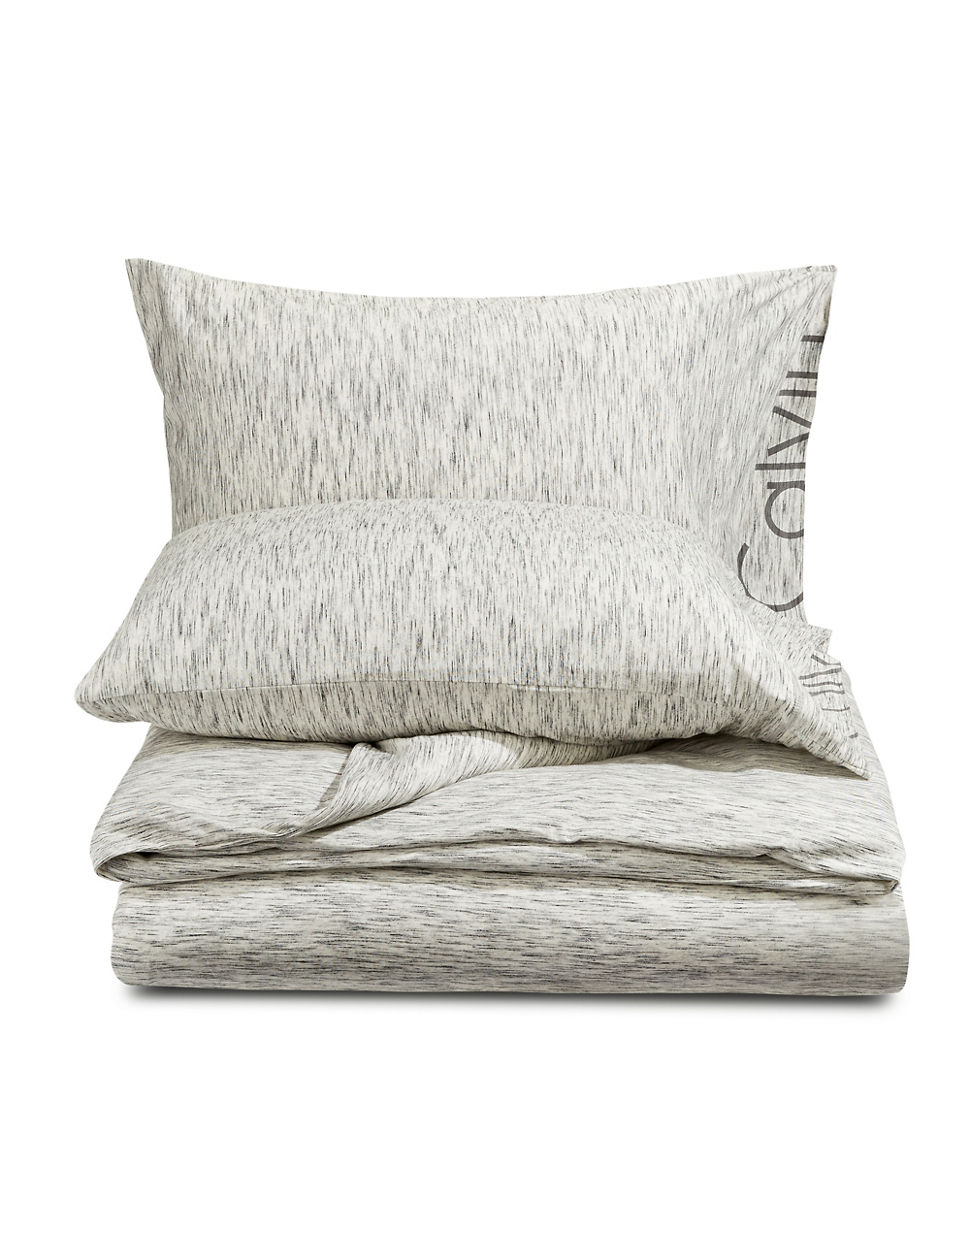 home bed duvet bamboo com queen full amazon kitchen calvin flower klein dp cover bedding hyacinth